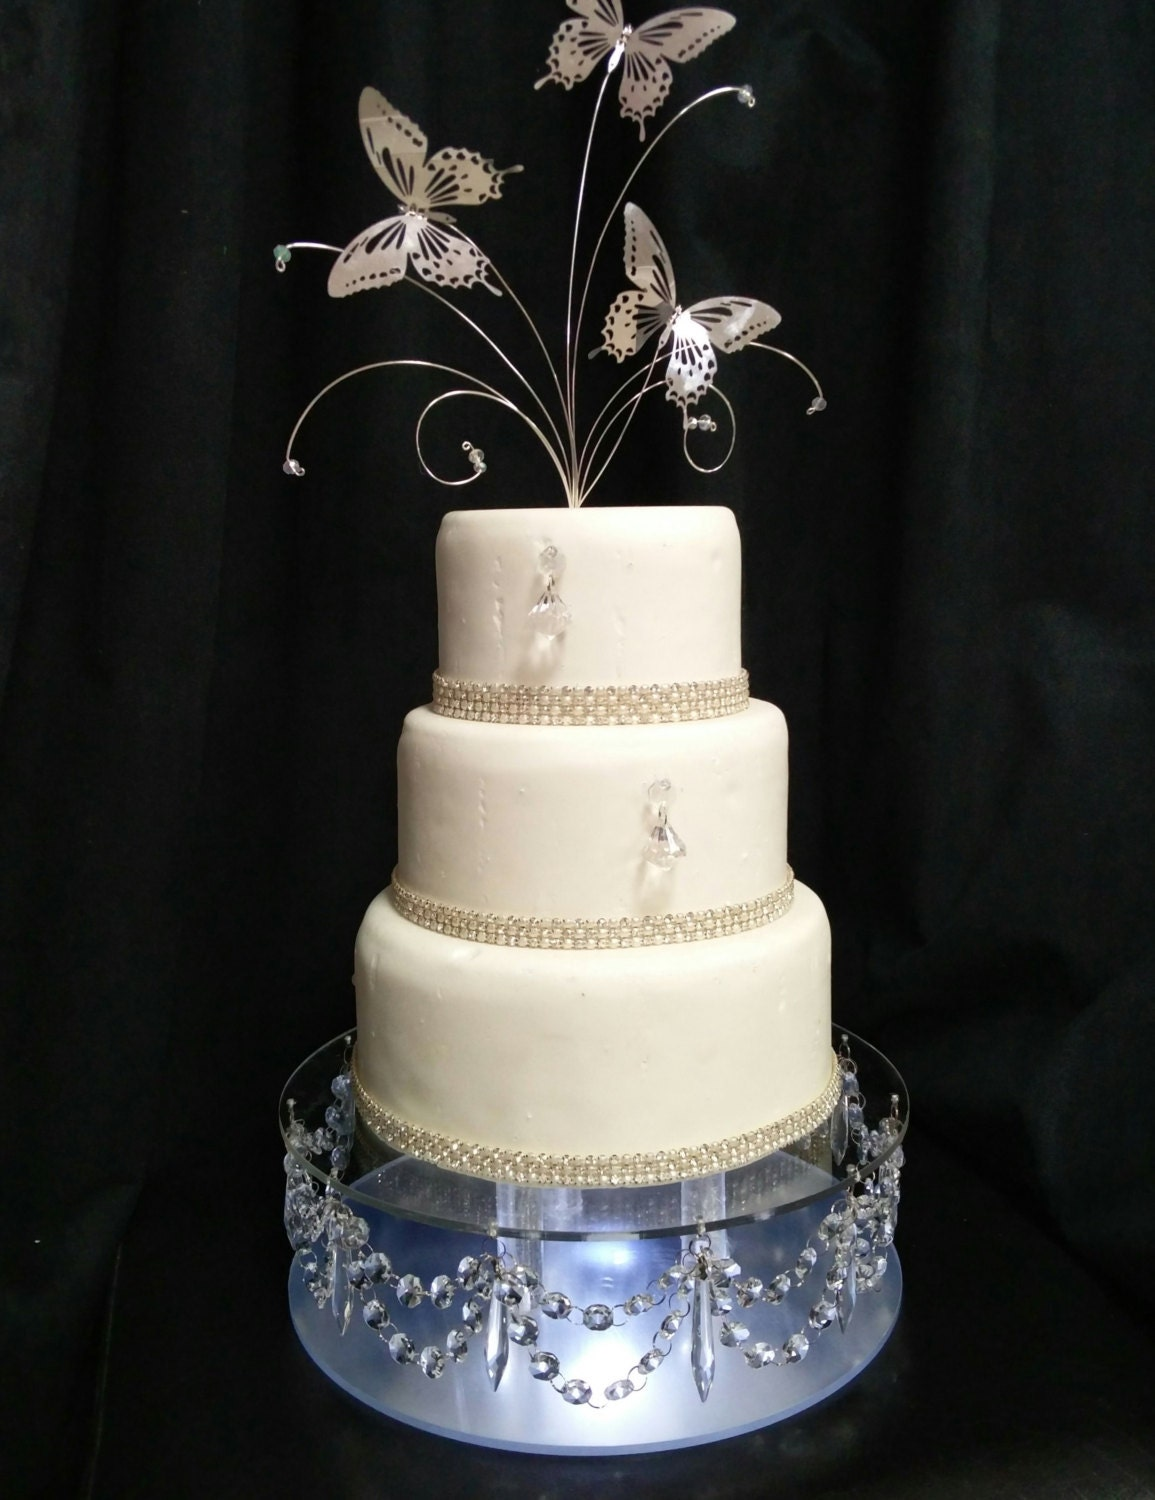 Crystal drape design wedding cake stand with lights many